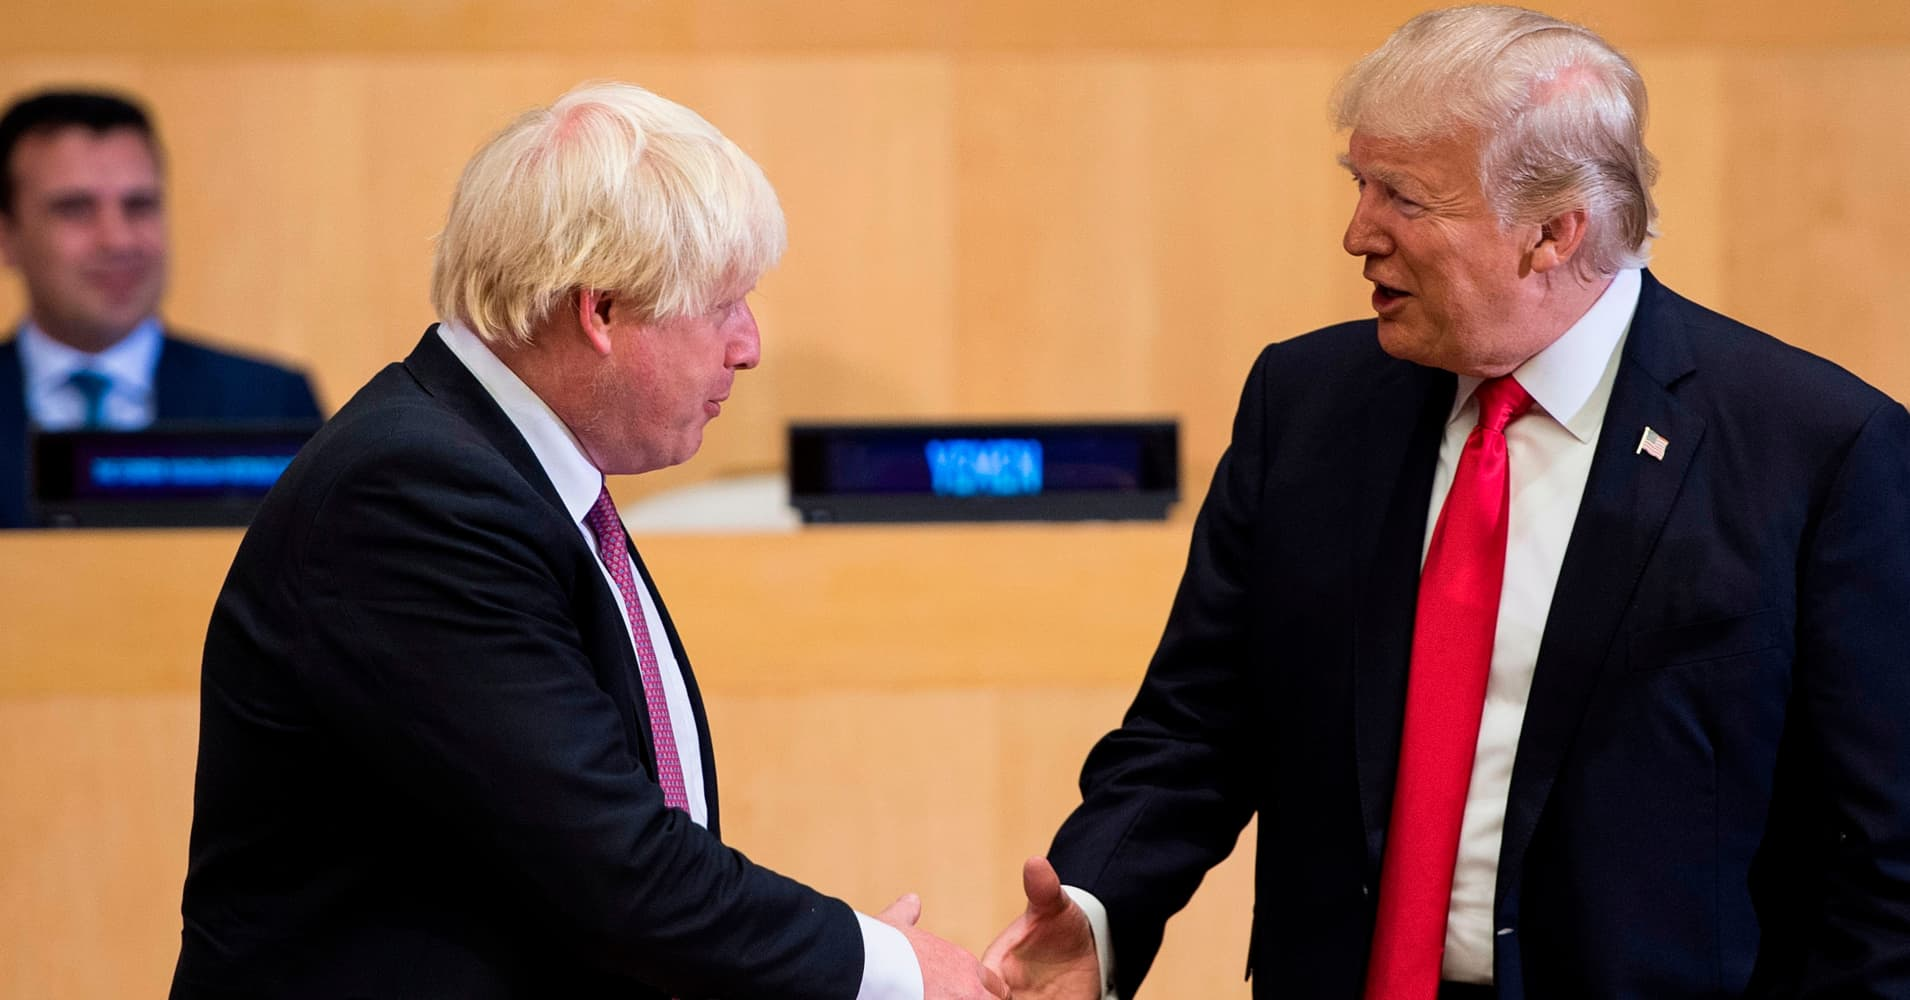 Downing Street defends Brexit deal after Trump claims it obstructs US-UK trade